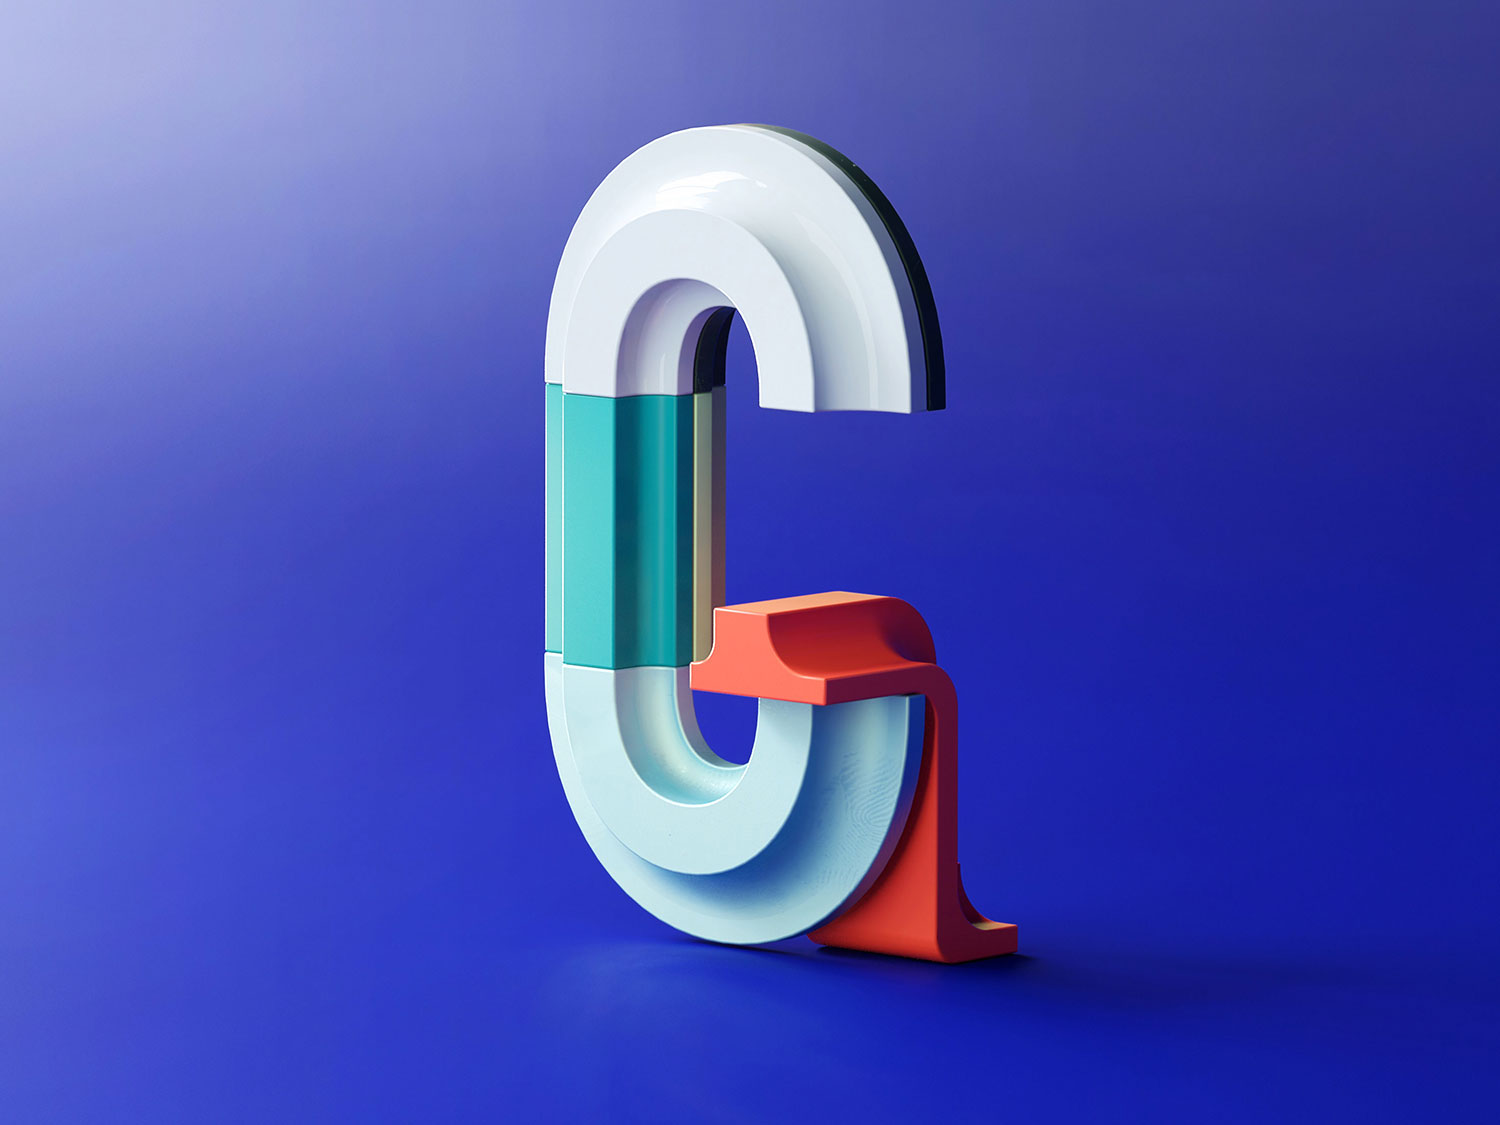 36 Days of Type 2018 - 3D letter G visual.